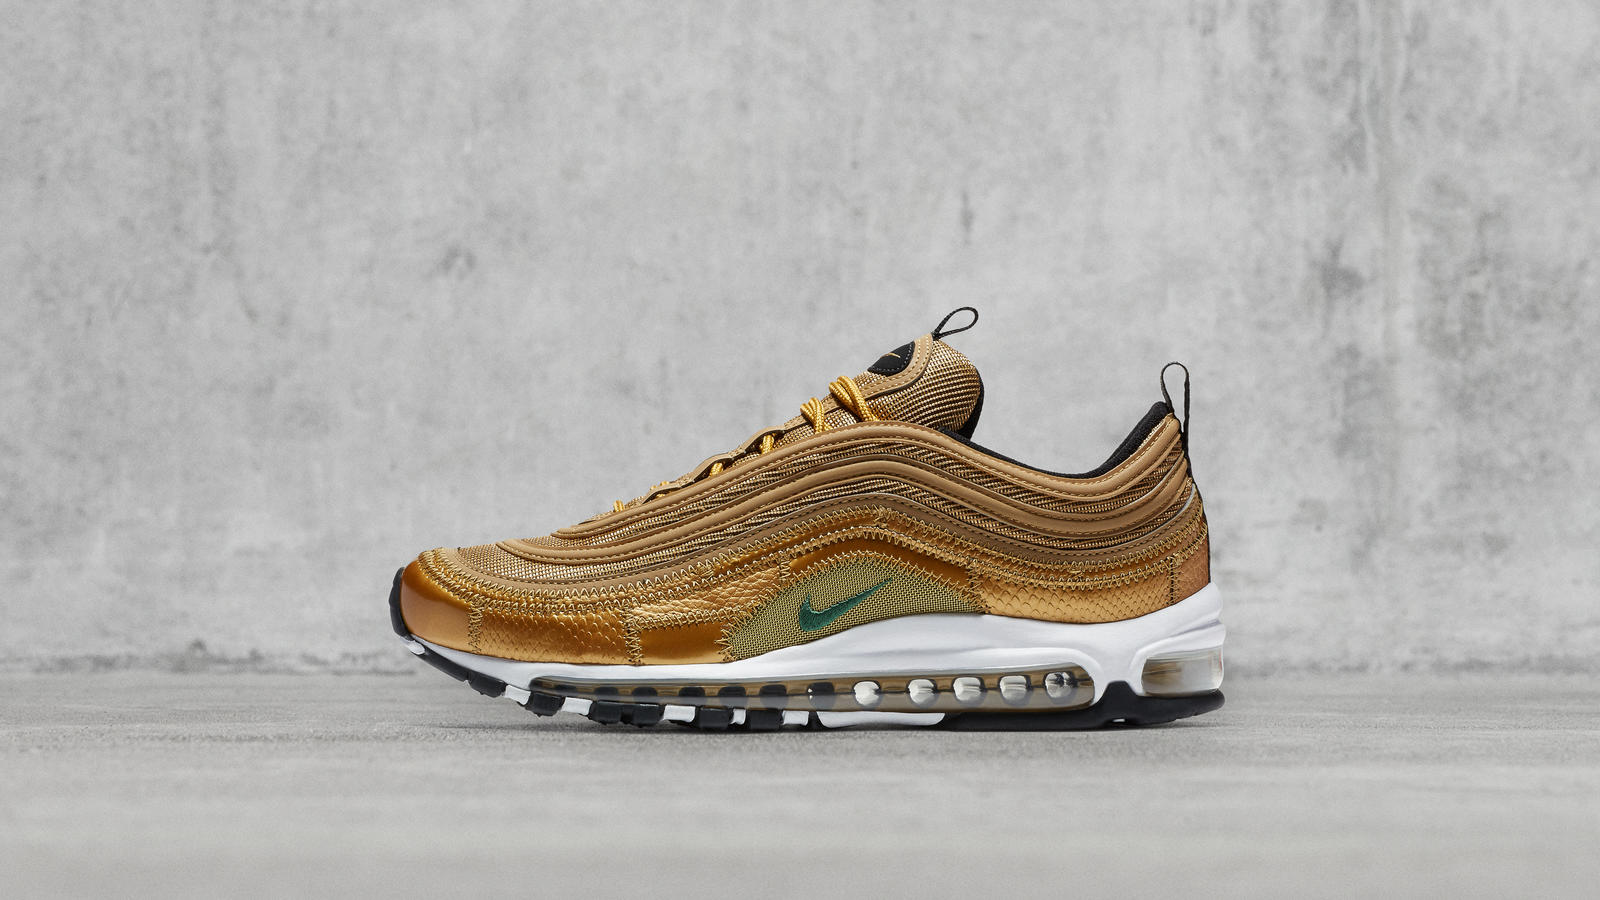 Nike Air Max 97 Premium SE Metallic Gold Schwarz Herren in